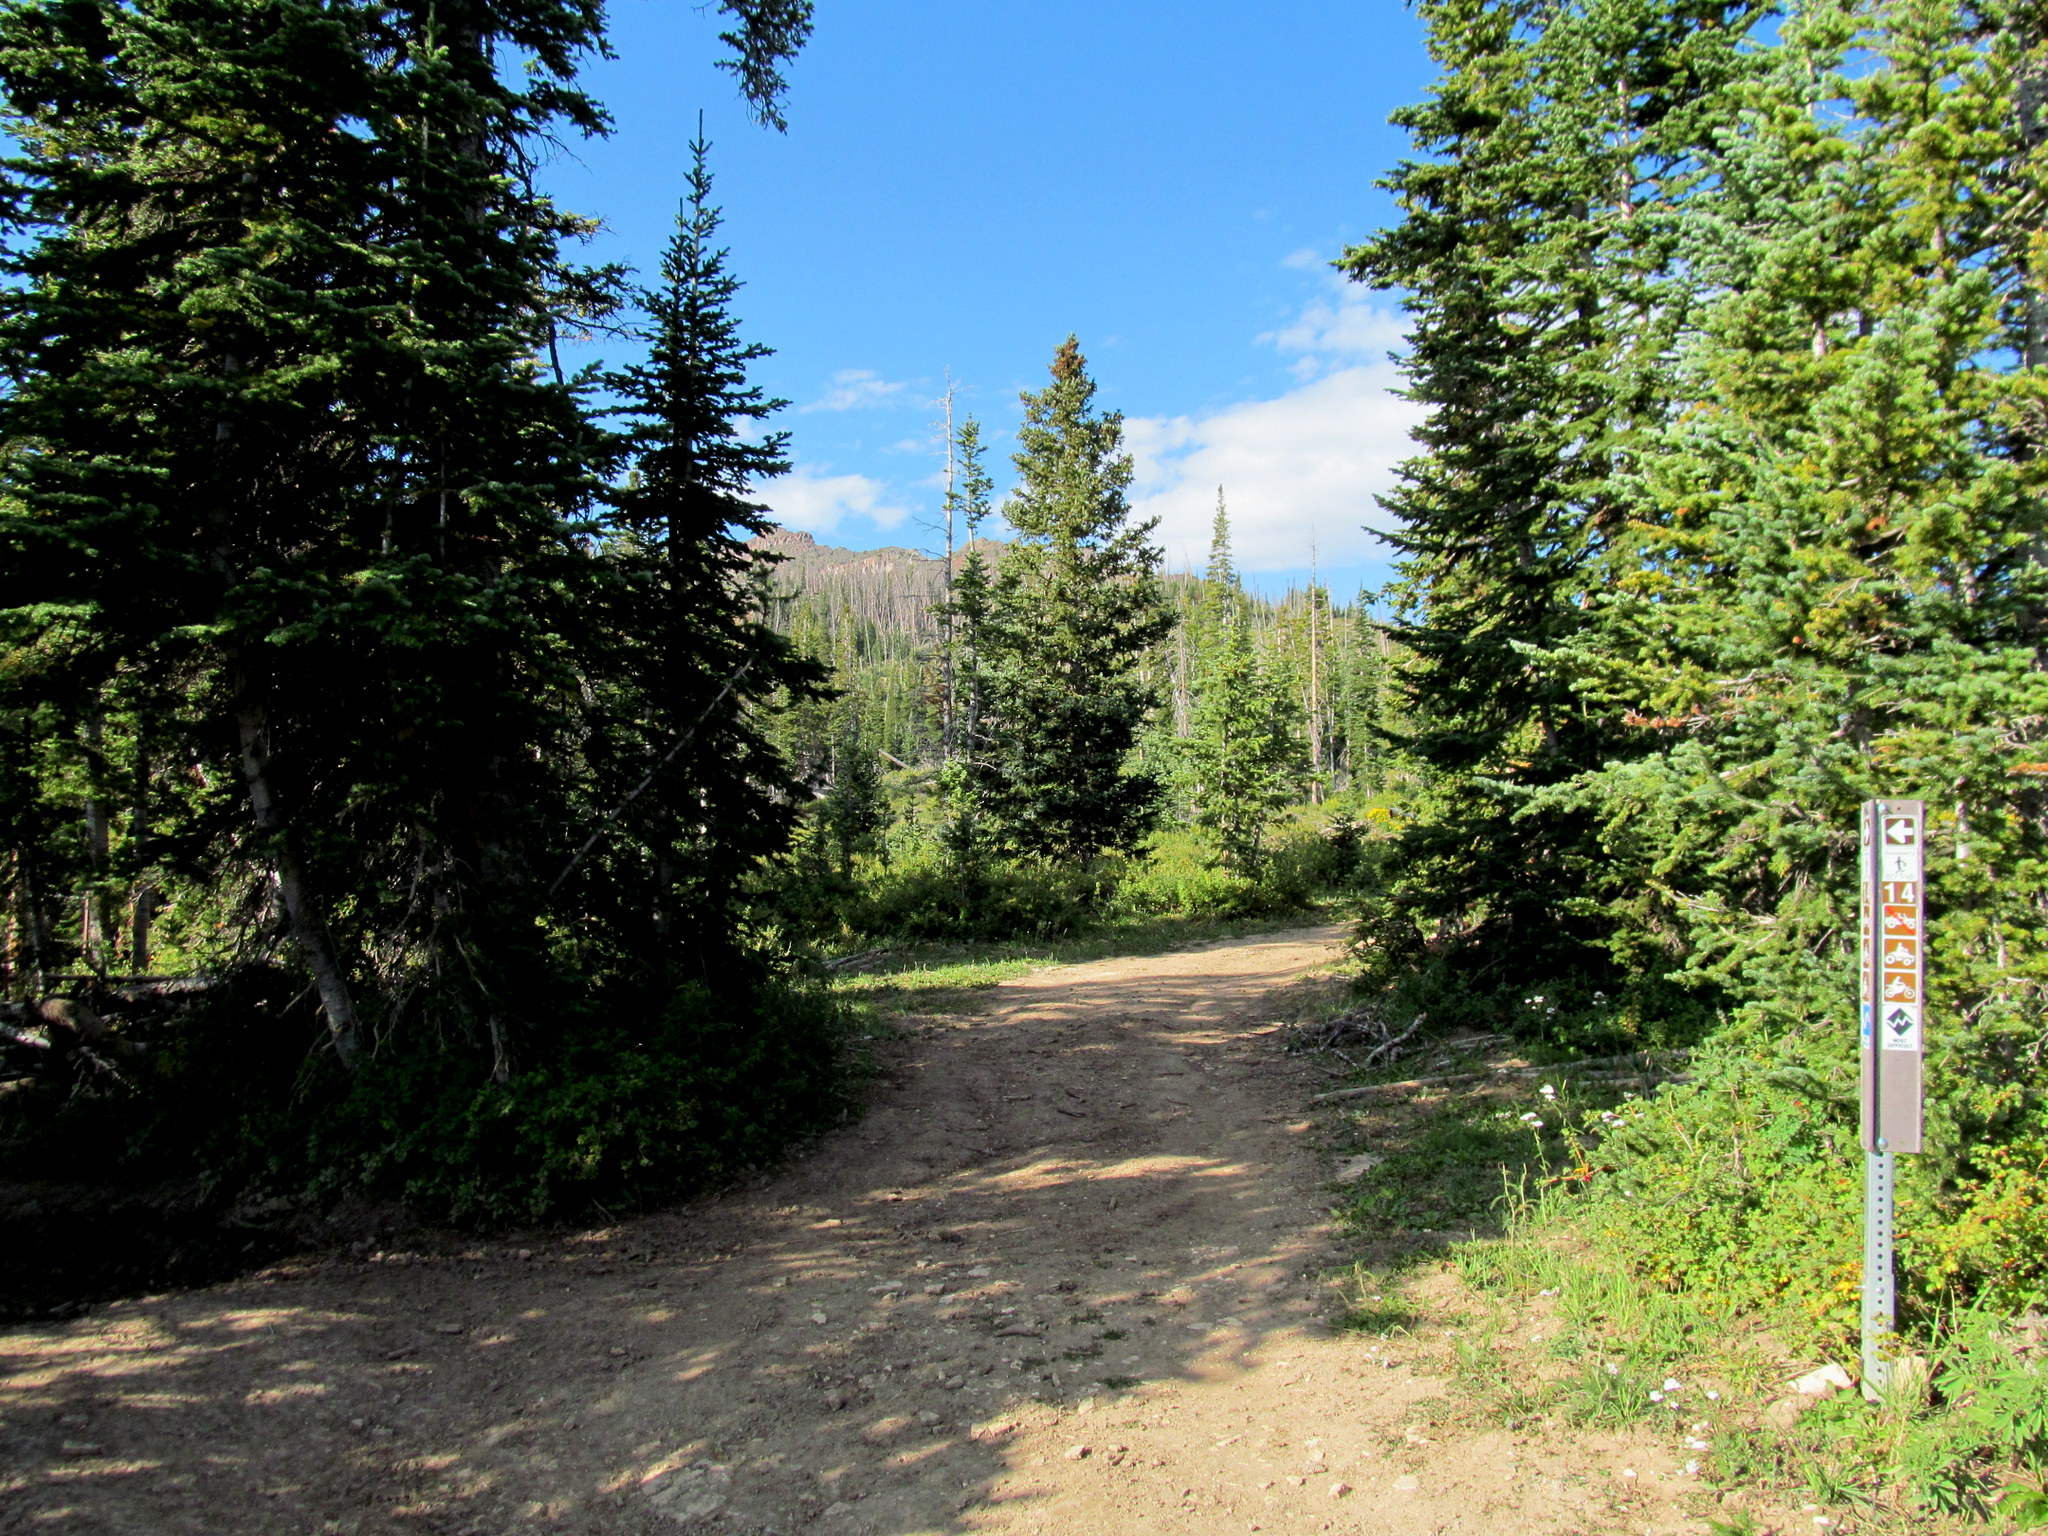 Photo: Beginning of the hike at UM Pass